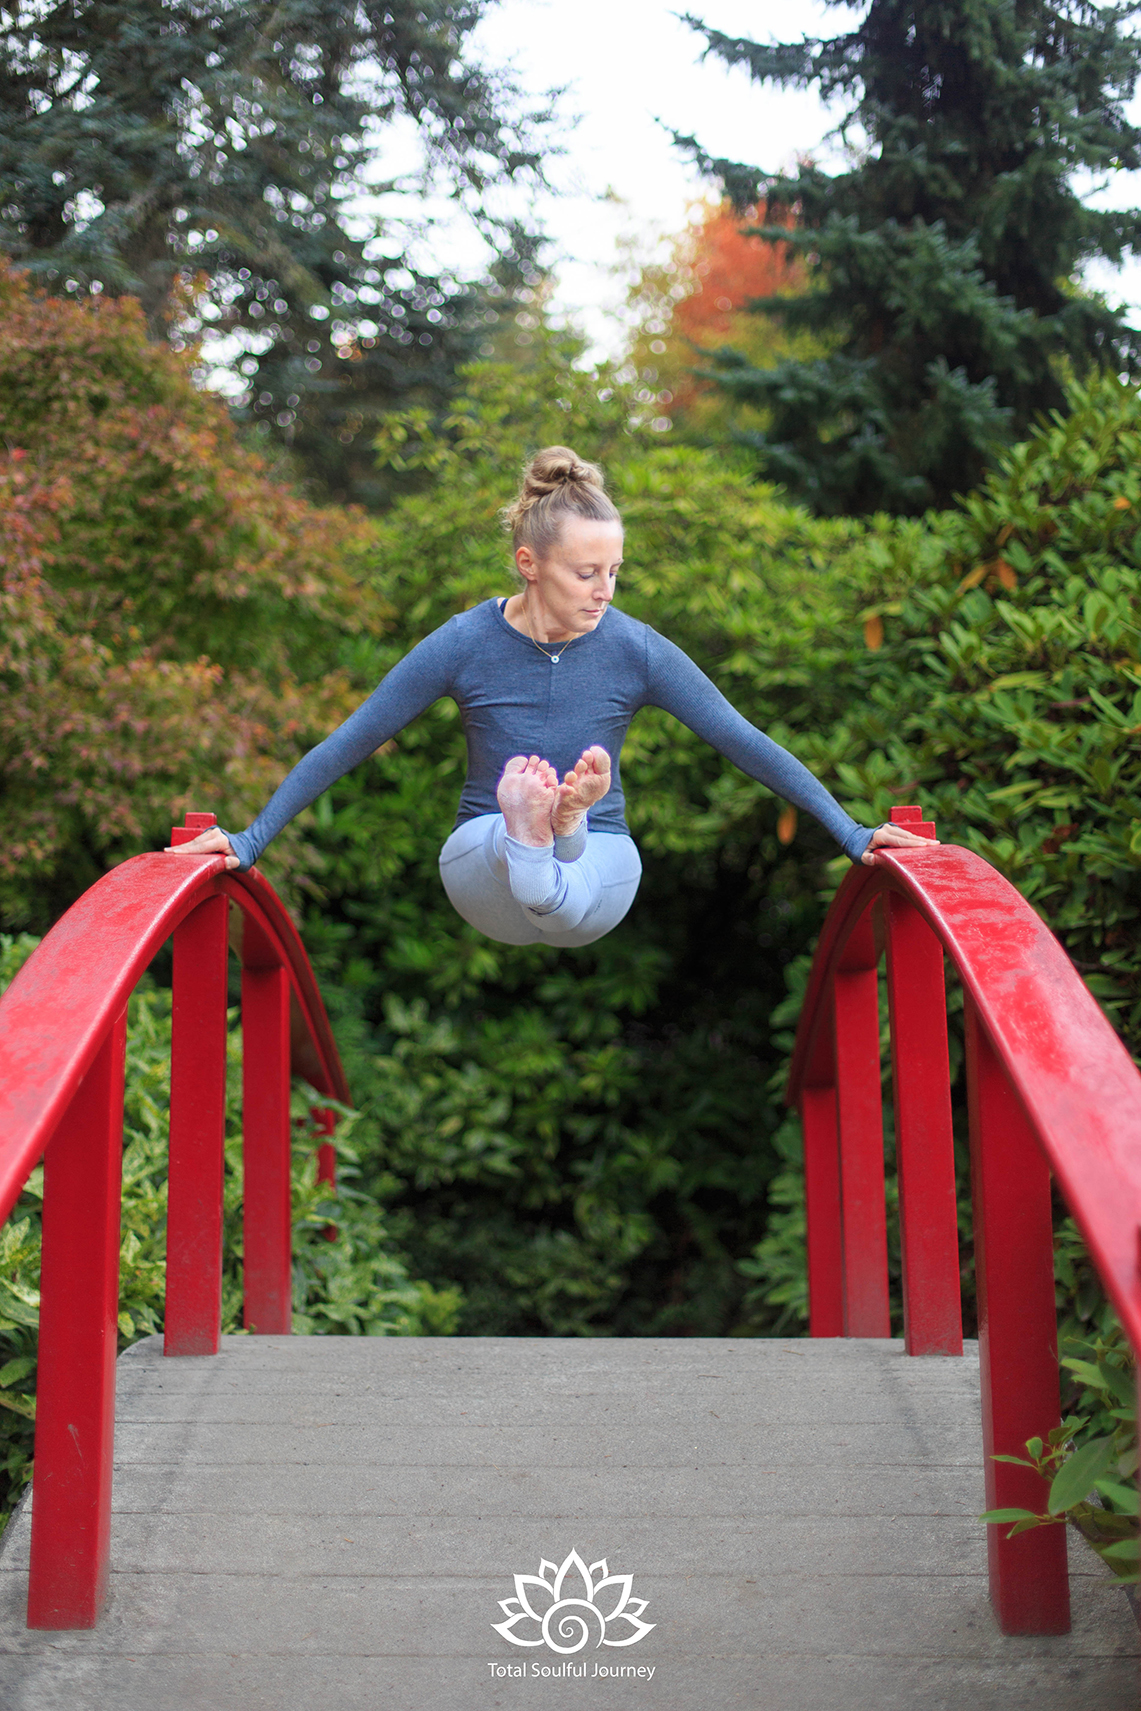 Robin Martin is driven by her passion for yoga and the pursuit of excellence. Many yoga poses require practice and determination to achieve. Photography by Paul Garrett